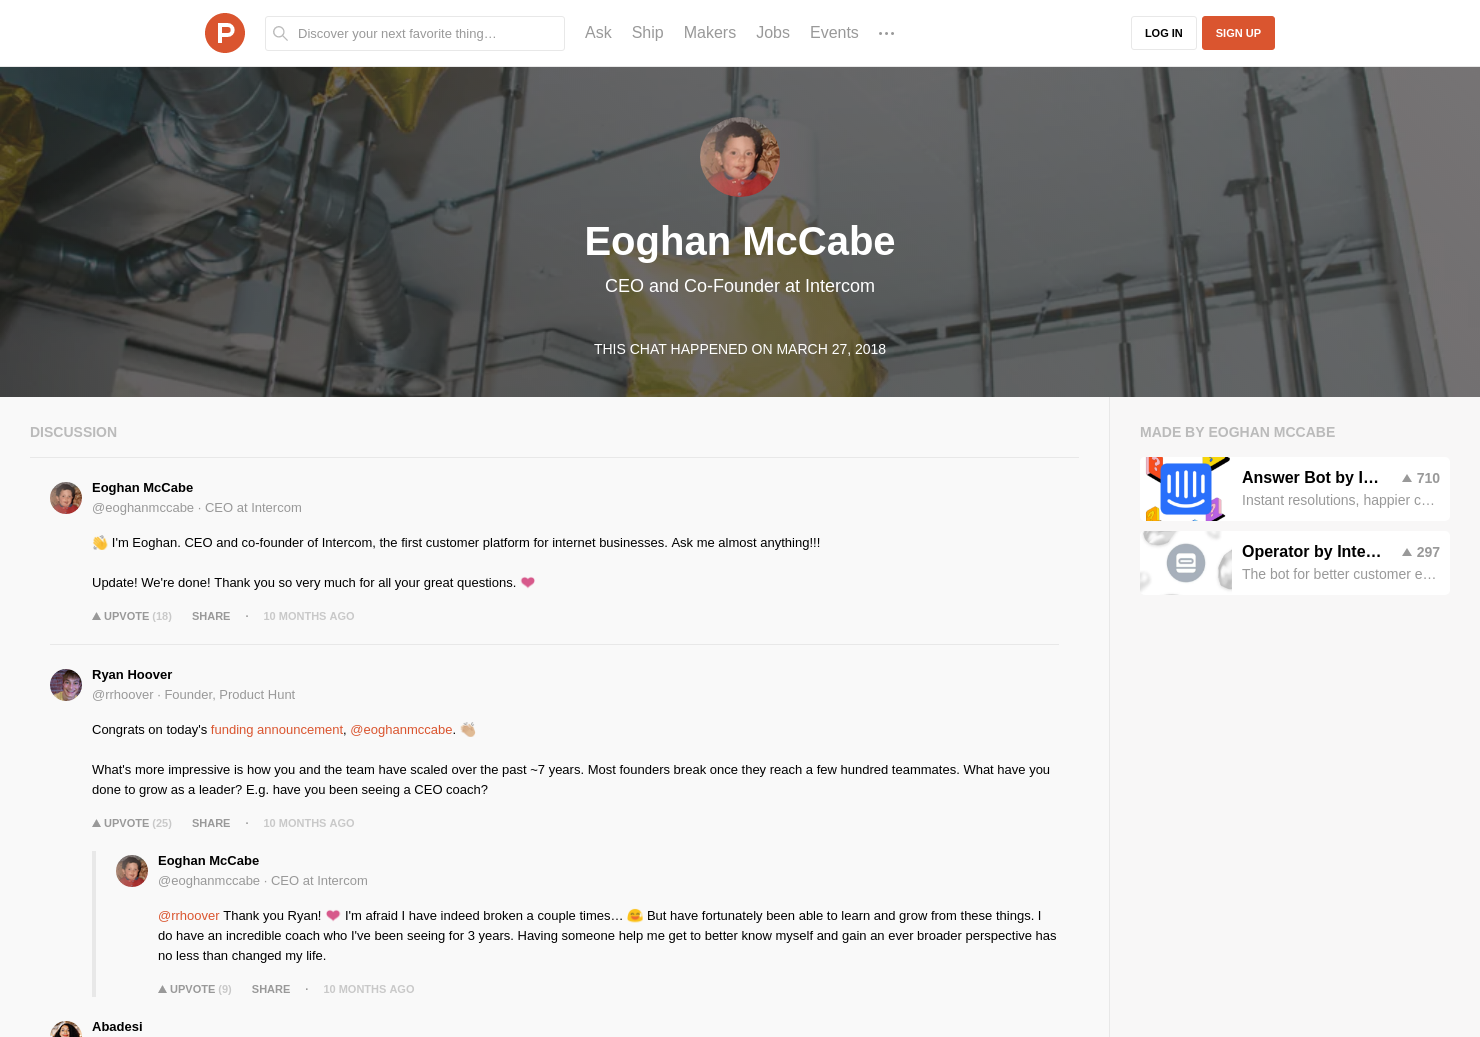 Eoghan McCabe LIVE Chat on Product Hunt